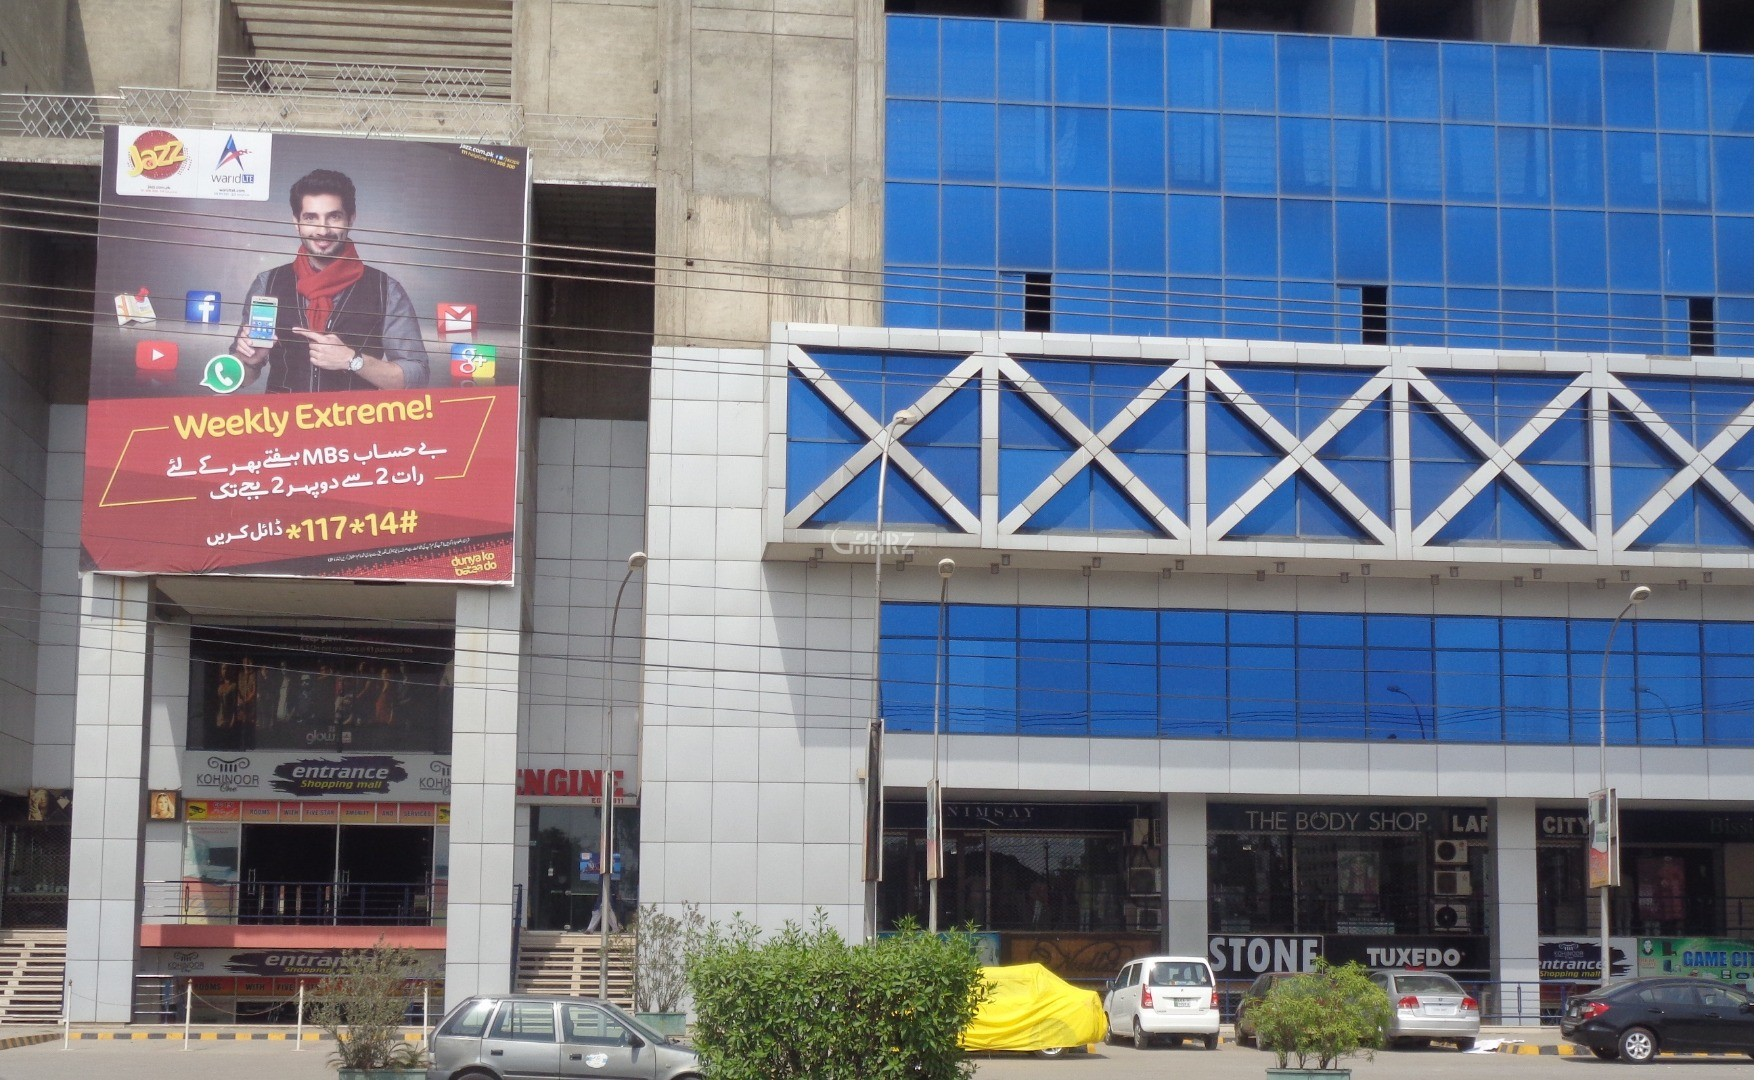 Koinor Eetbank Bottom.855 Square Feet Commercial Building For Sale In Kohinoor Faisalabad